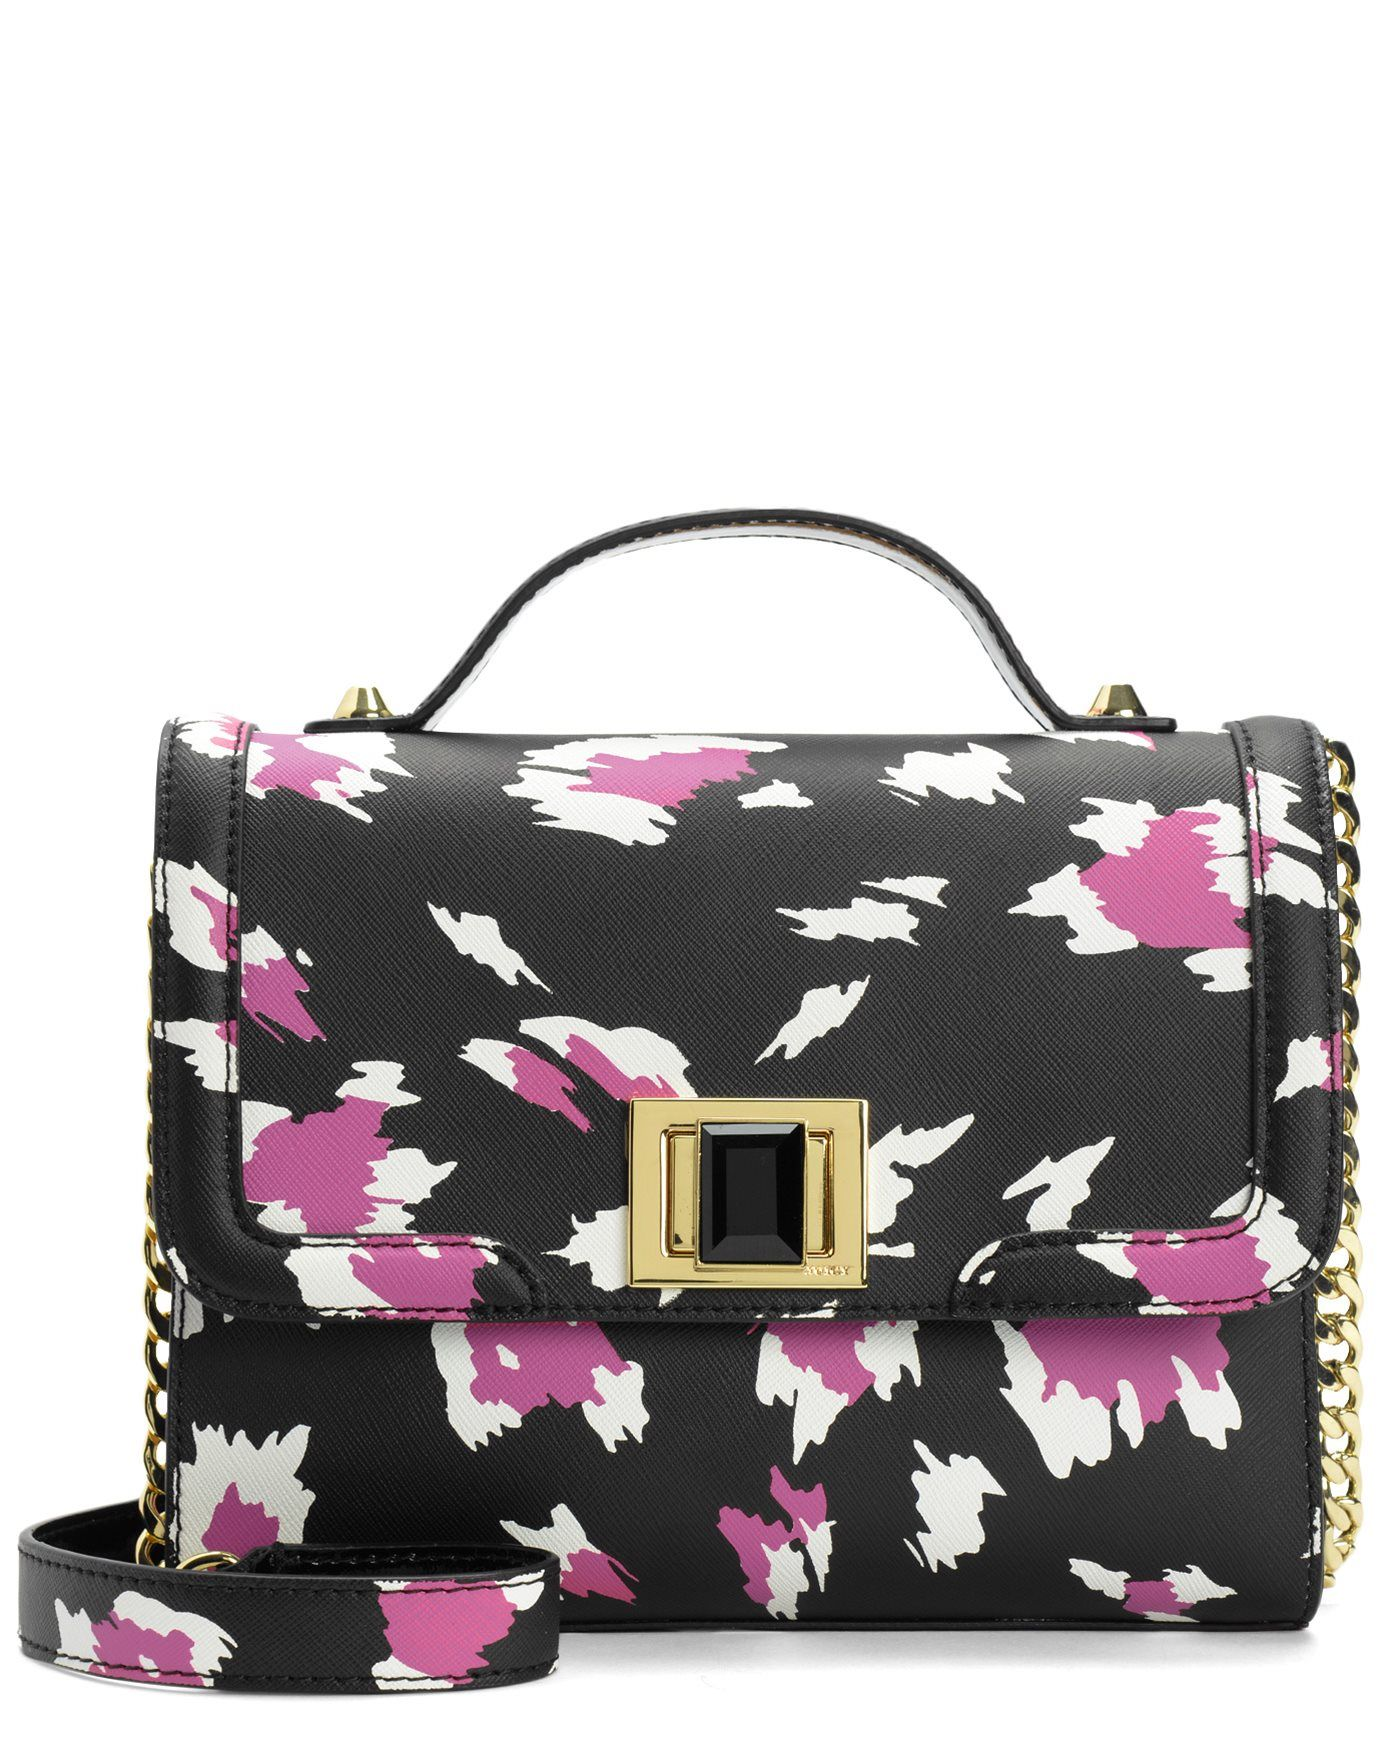 WILD THING LEATHER FLAP CROSSBODY - Juicy Couture  ae535aaa01e6c